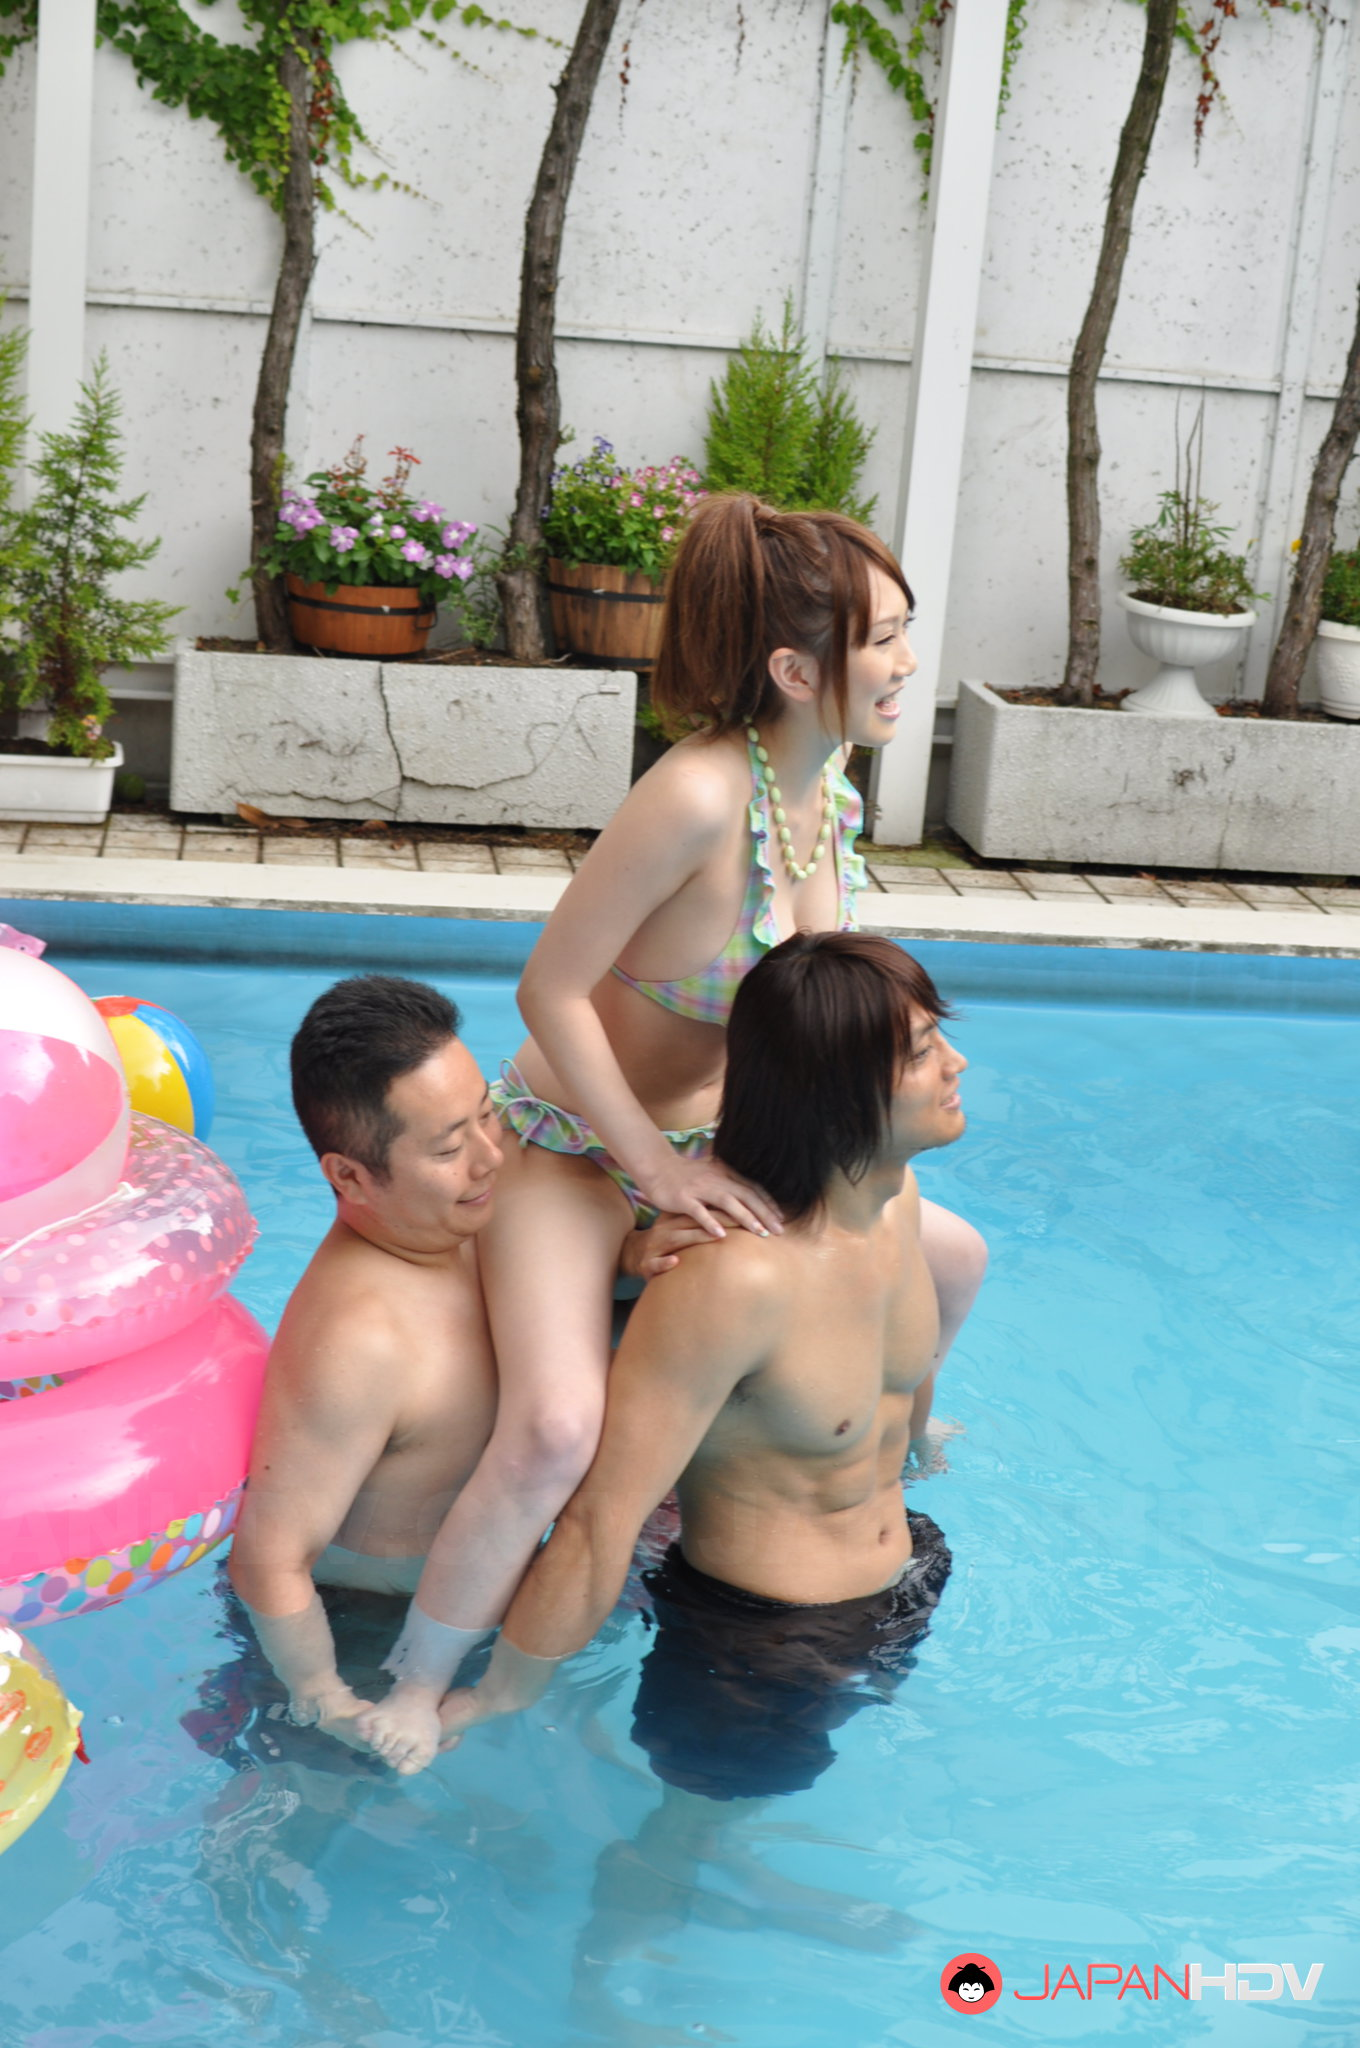 Nude party pool